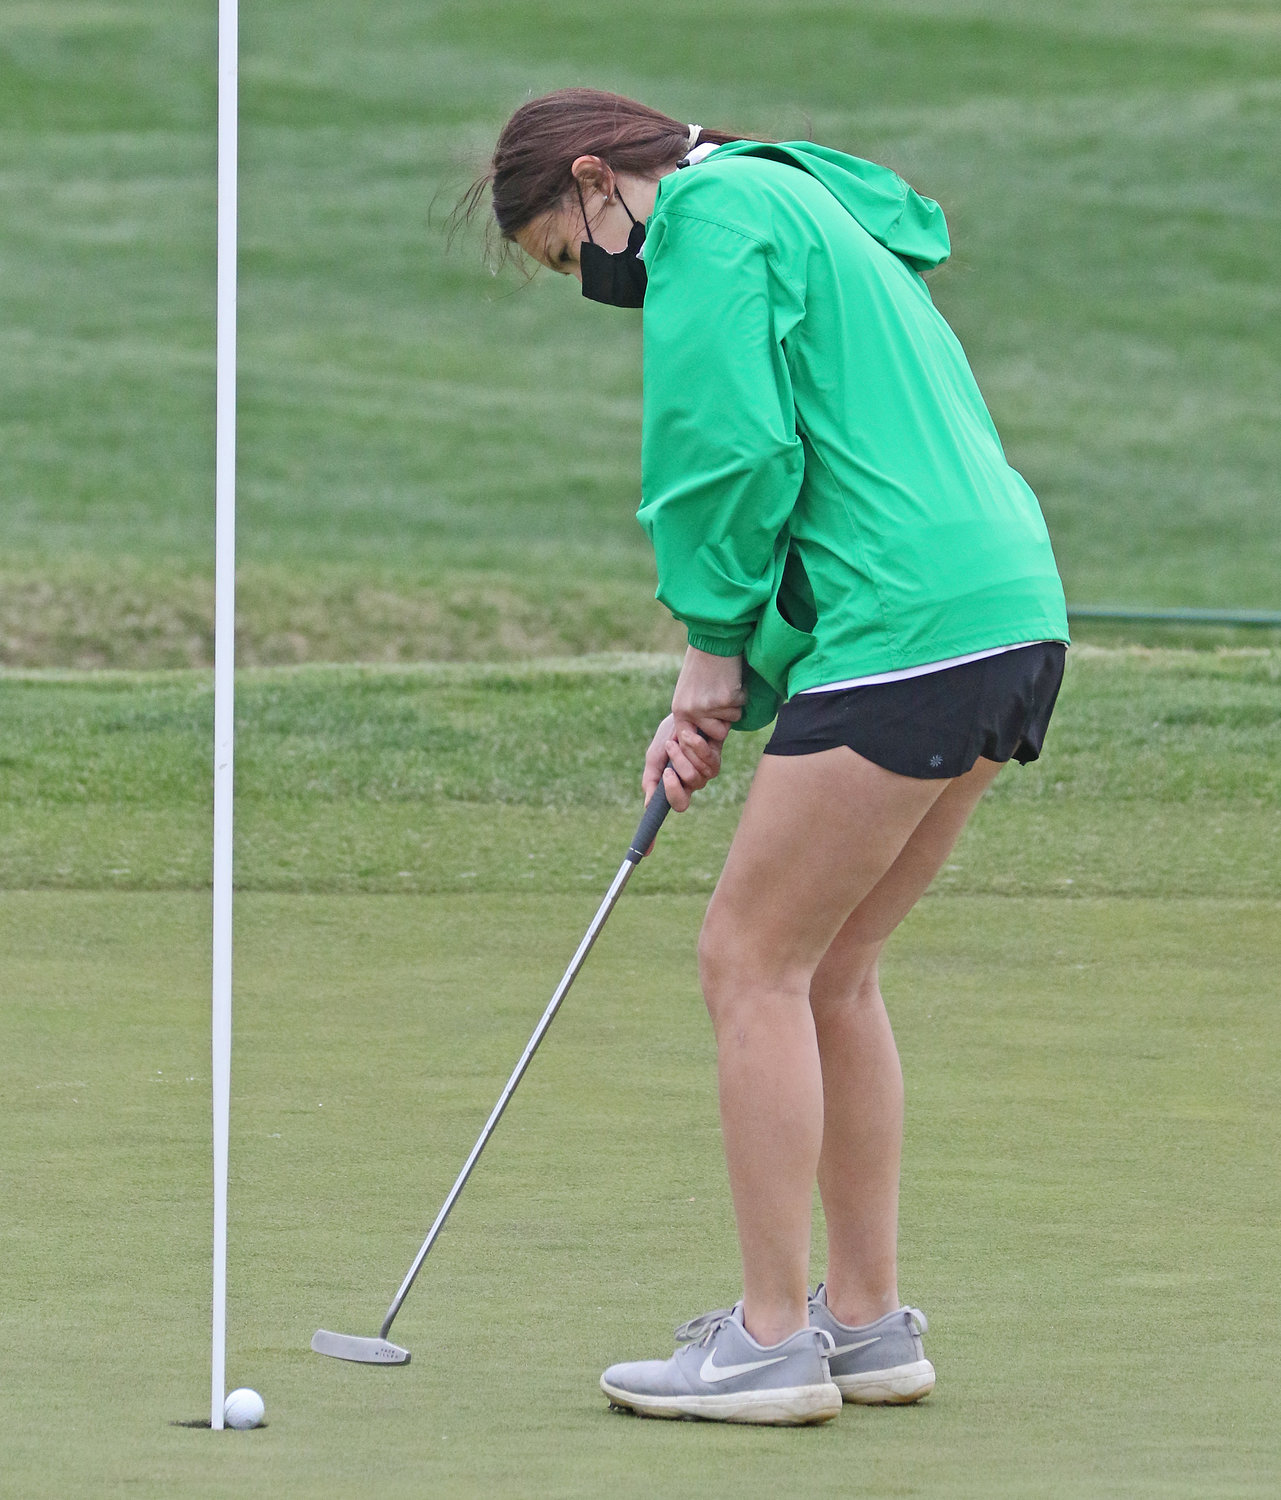 SCH sophomore Evelyn Lauerman taps in the ball on the ninth hole.  (Photo by Tom Utescher)